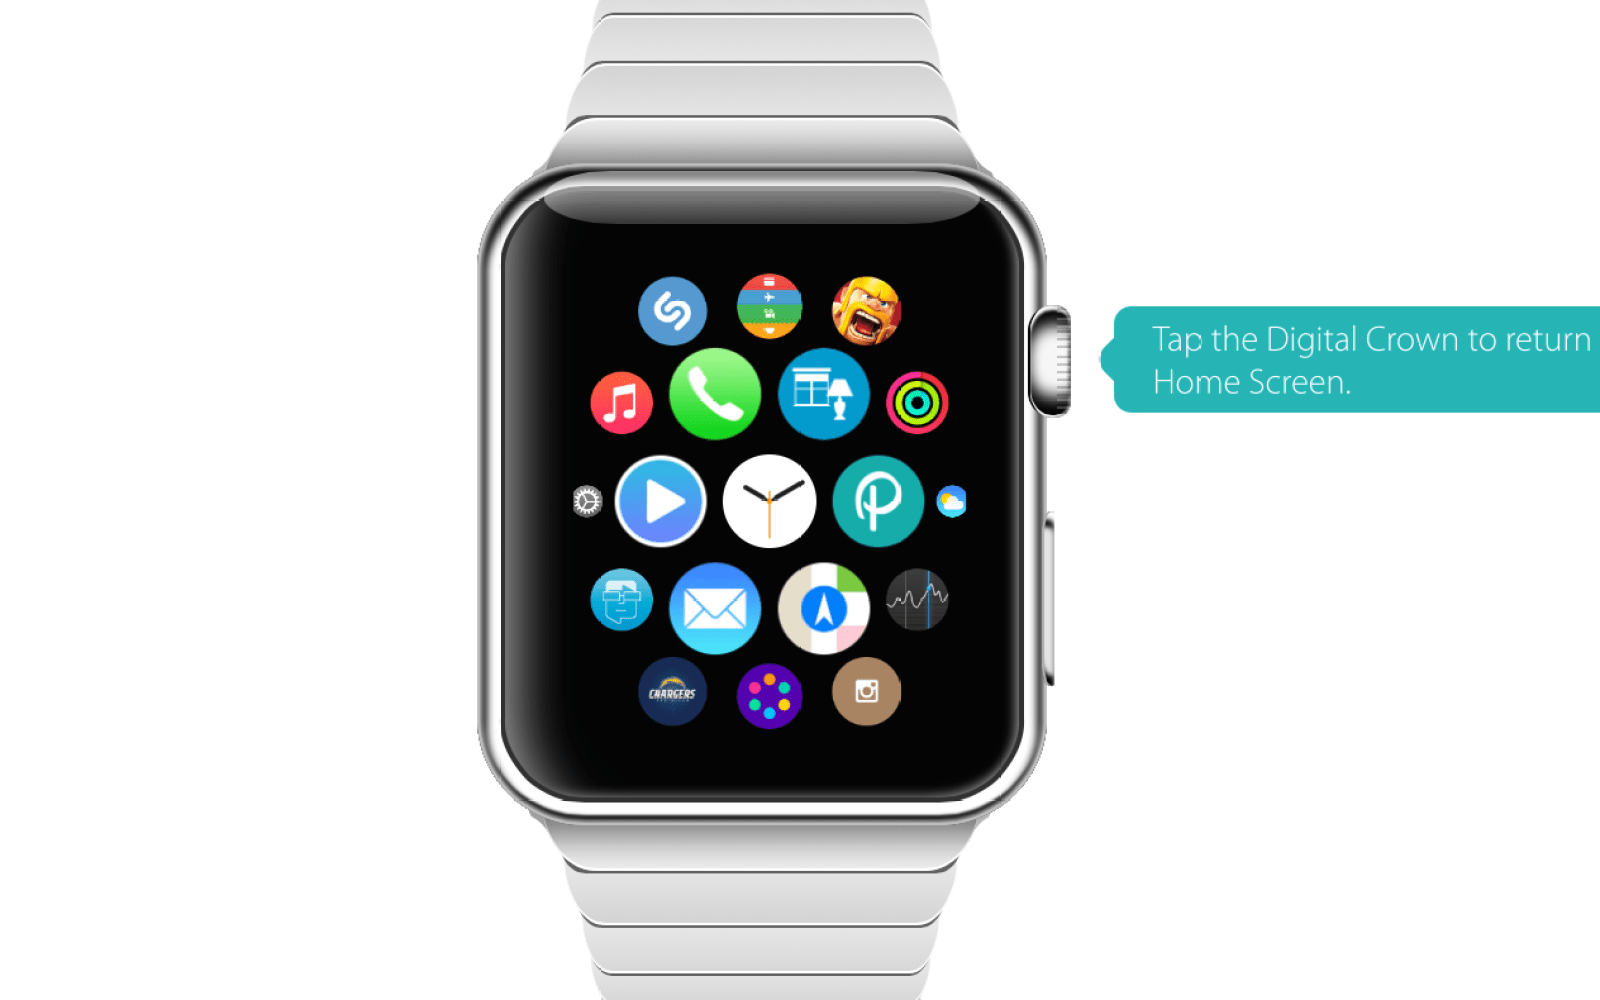 Interactive Apple Watch demo gives users a feel for the wearable's UI ahead of launch